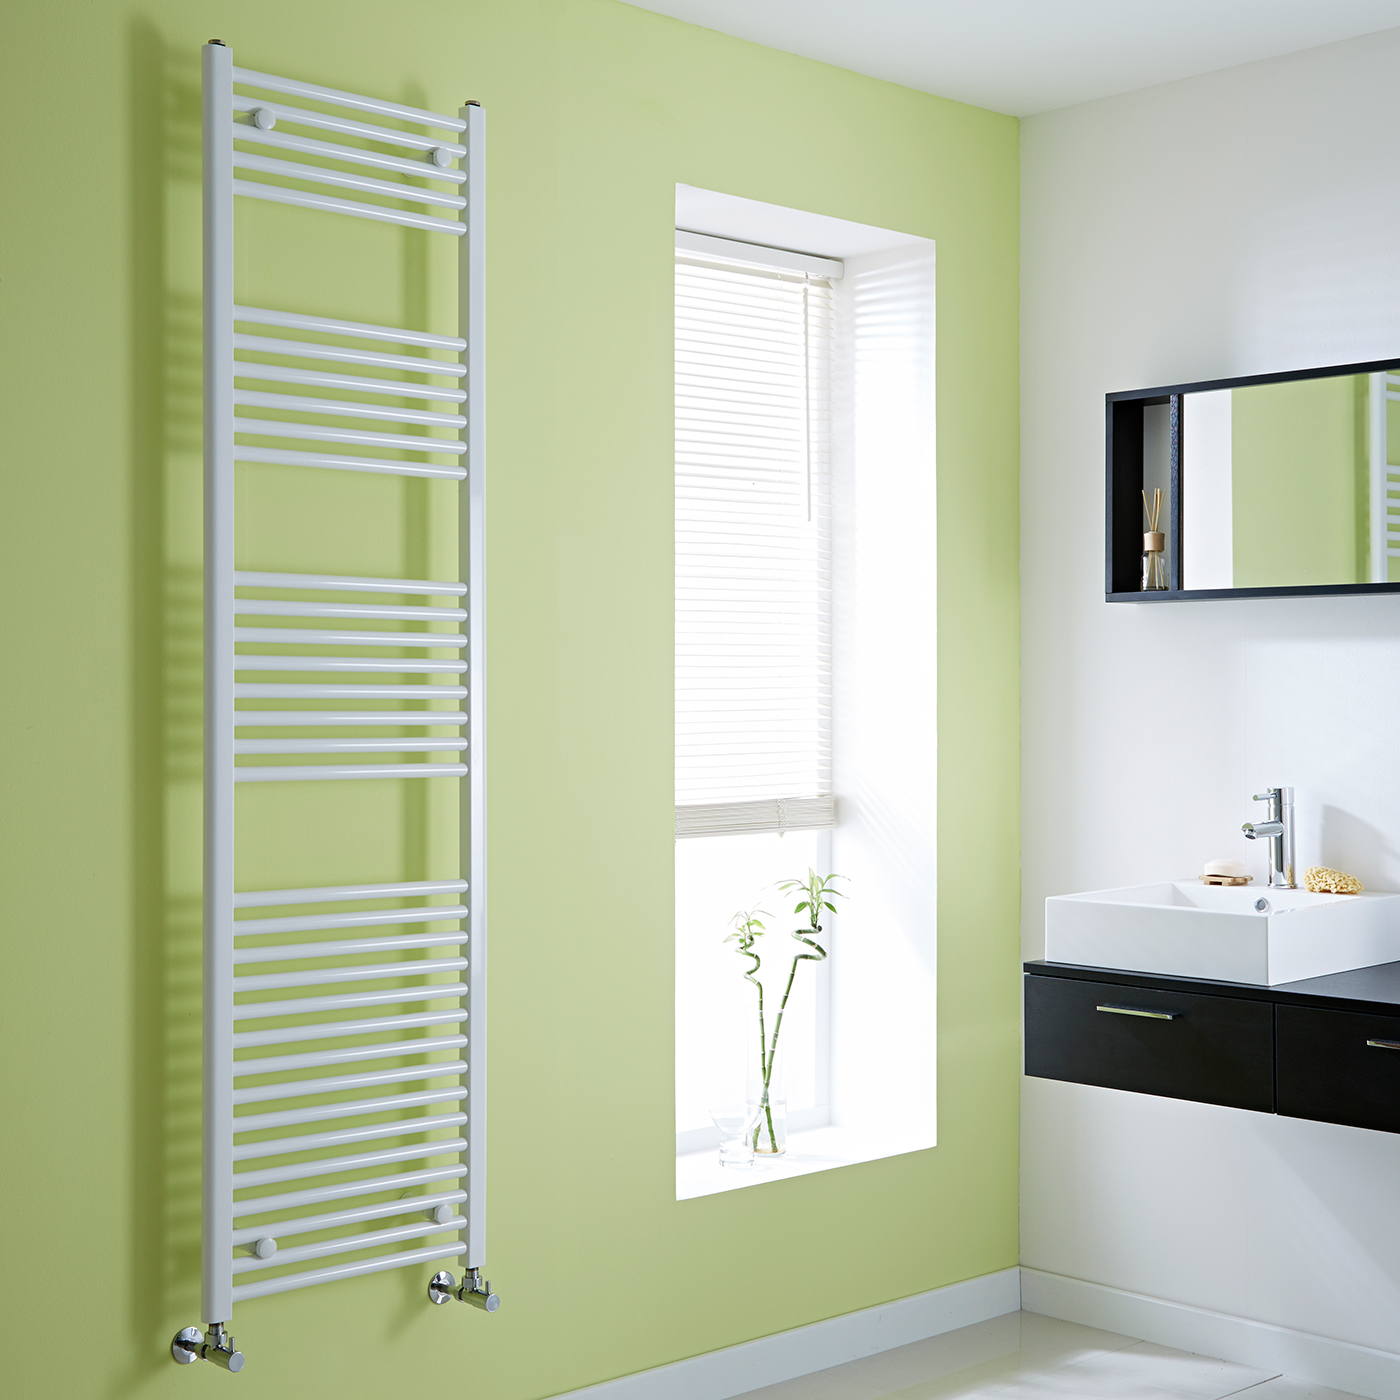 Milano Calder - Flat White Heated Towel Rail - 1800mm x 500mm